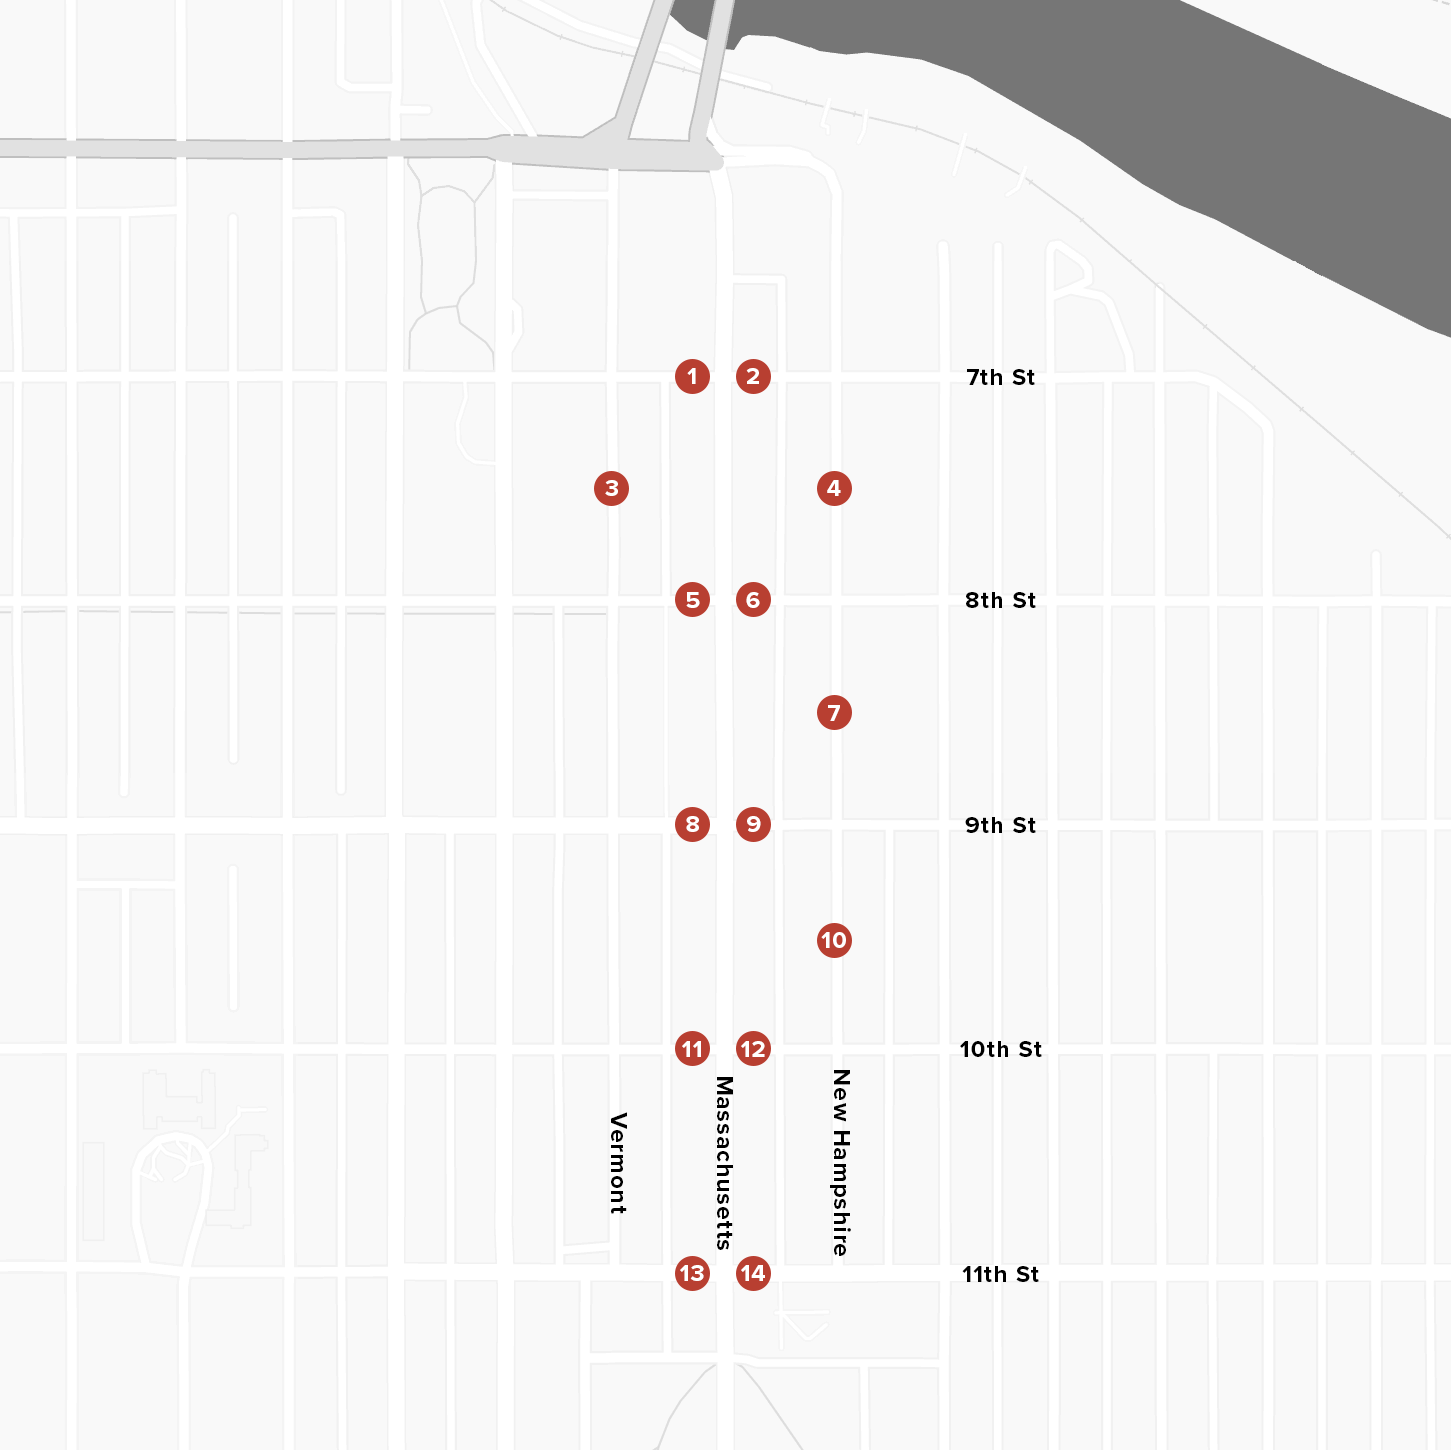 parking-day-map.png